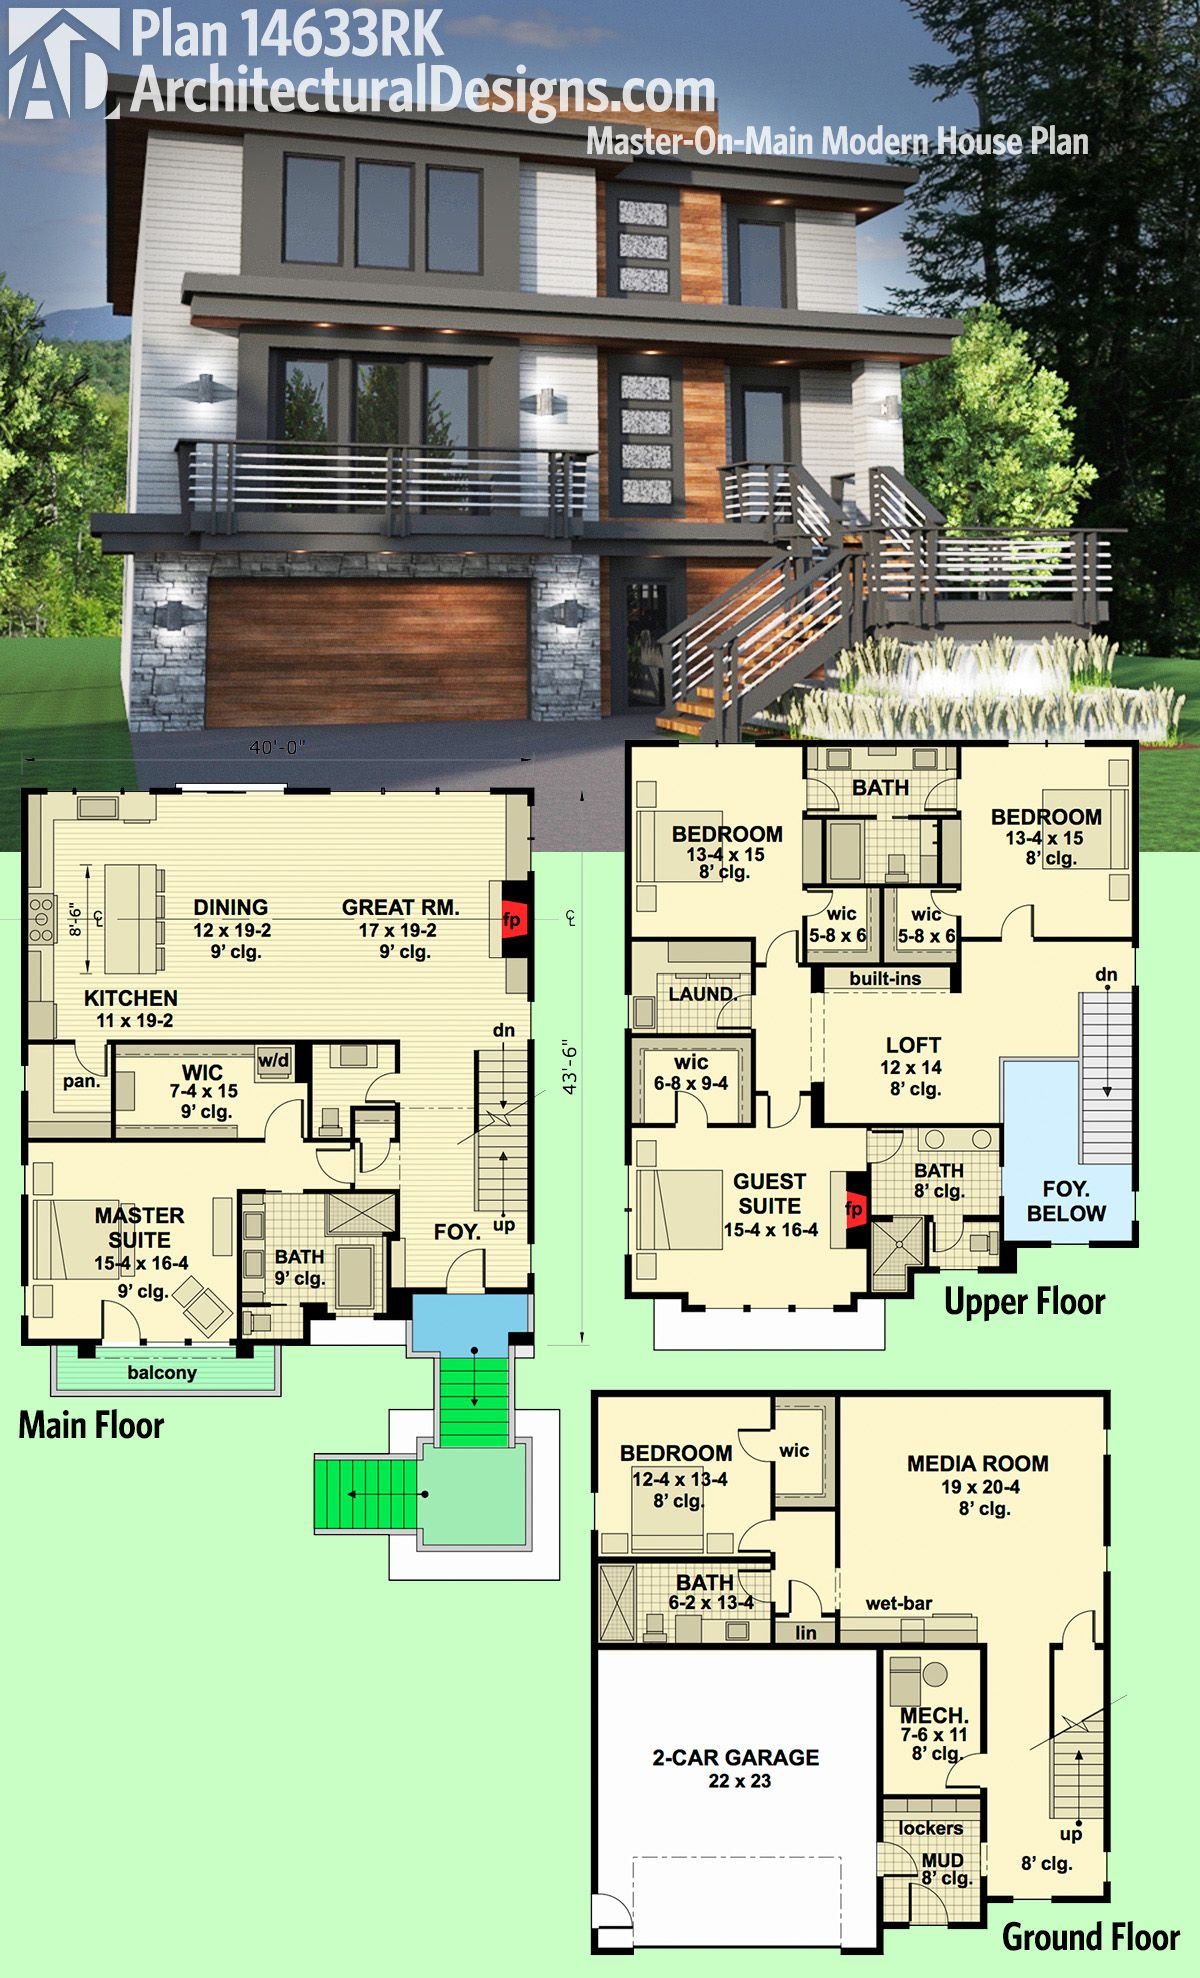 Plan 14633rk master on main modern house plan modern for Modern house blueprints